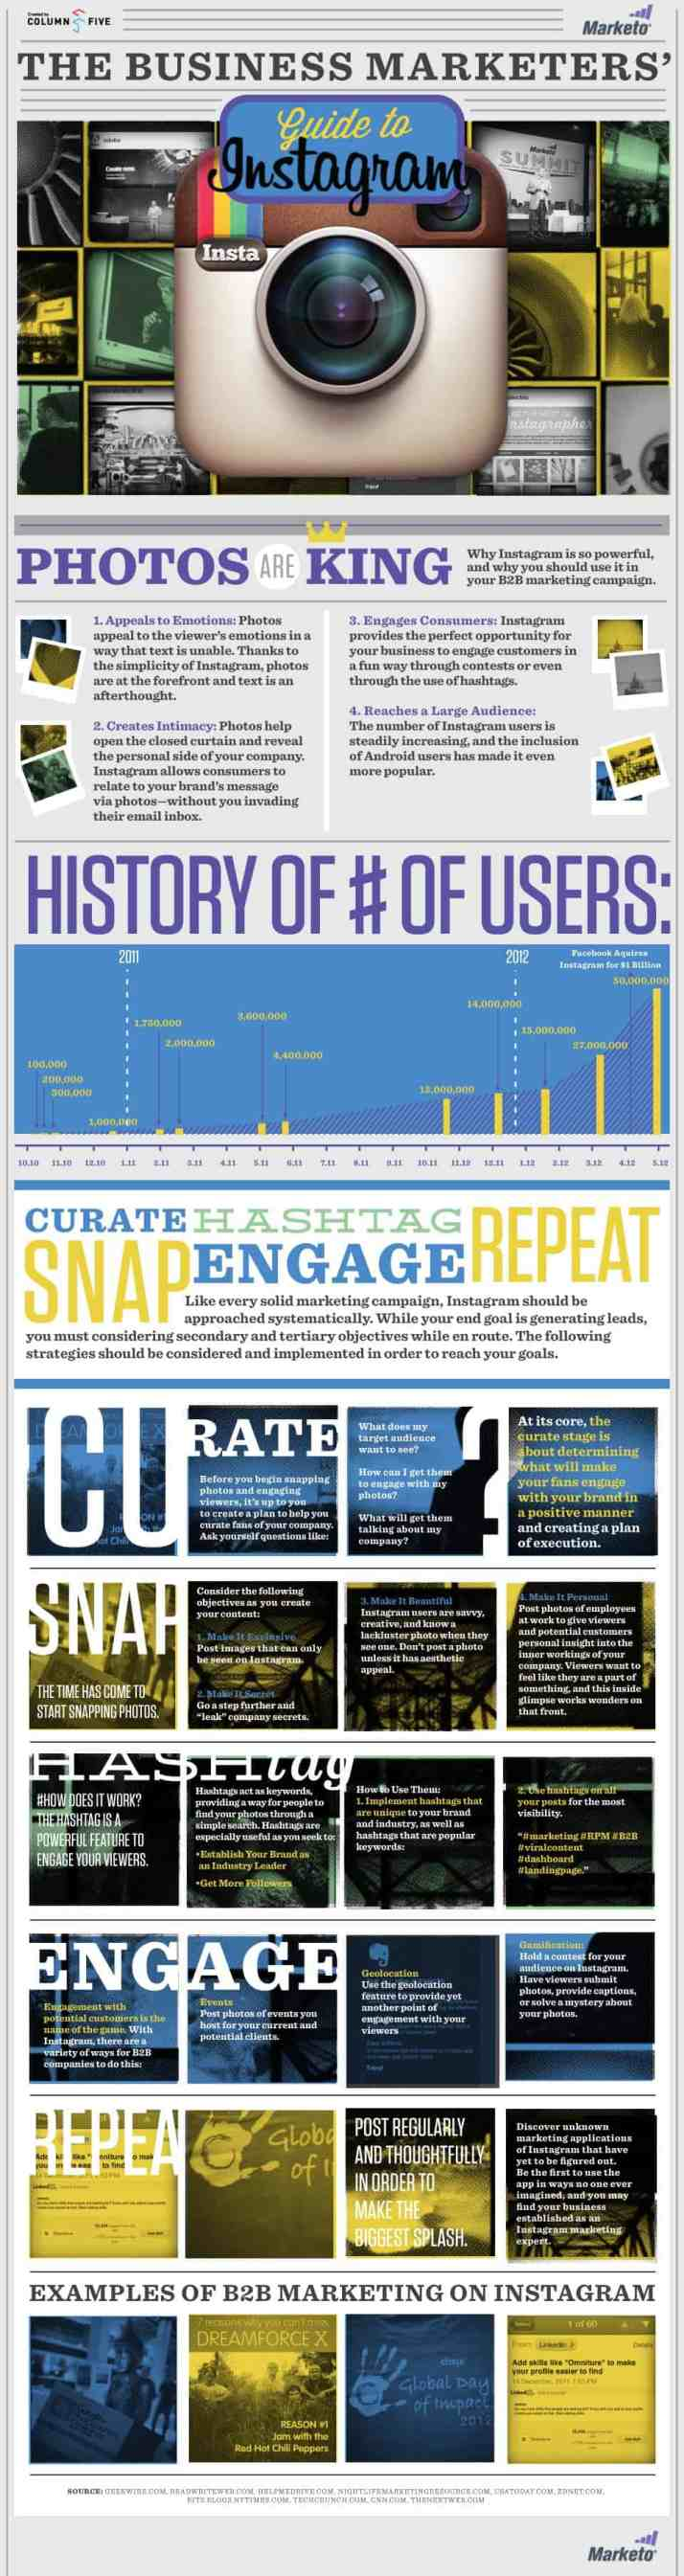 The-Business-Marketers-Guide-to-Instagram-Infographic